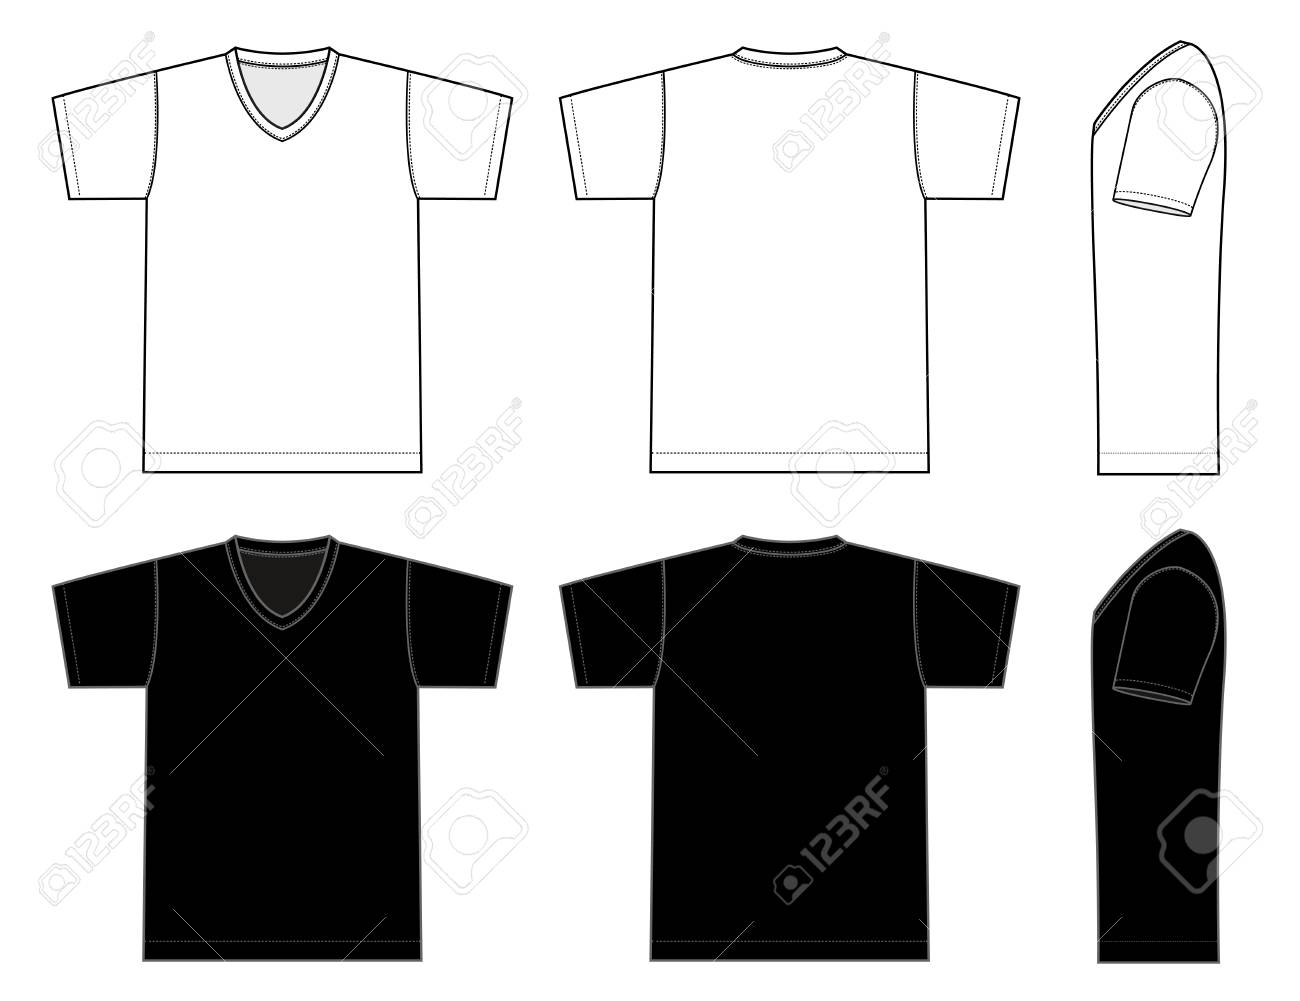 Charmant T Shirt Modellschablone Psd Galerie - Entry Level Resume ...